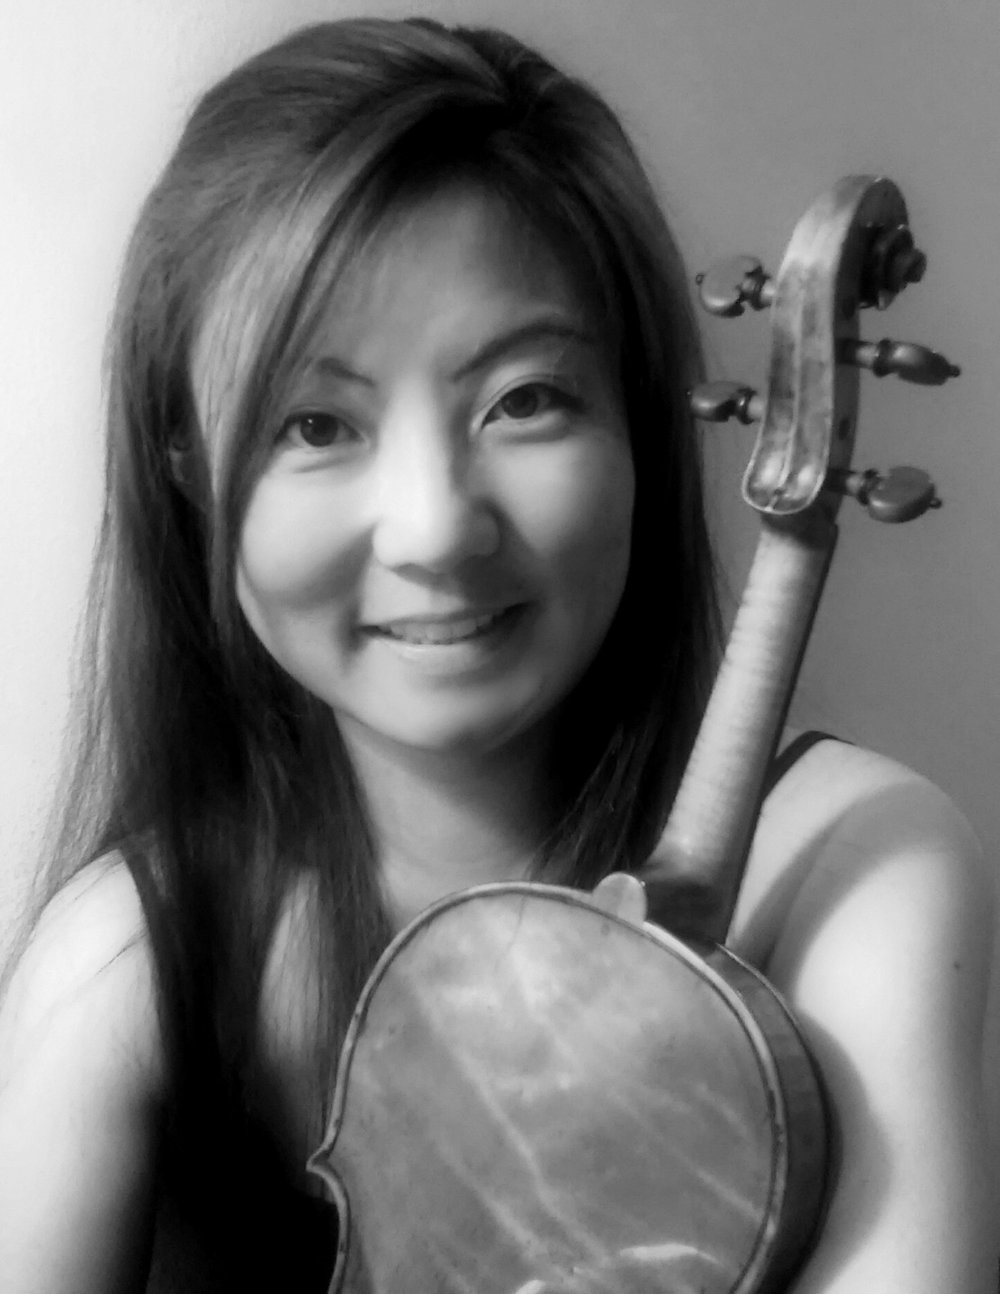 Christie-Keiko Abe - VIOLIN, SUZUKI VIOLIN, CHAMBER ENSEMBLEAn Australian Violinist, Christie-Keiko Abe performs as a soloist, chamber and orchestral musician. She has given solo recitals in the USA, Austria, Japan and Australia.Her students have been successful in auditions and national/international competitions. Her students participate in the Chicago Youth Symphony, Midwest Young Artist Orchestra, DuPage Orchestra, Elgin Youth Symphony, IMEA All State, Interlochen Summer Music Camps, Chicago Suzuki Institute, Aspen Music Festival, New World Symphony, Chicago Trio Chamber workshops and many other music events.Ms. Abe received her Bachelor of Music degree with Honors from The Sydney Conservatorium of Music at The University of Sydney, her Master of Music from the Australian Institute of Music, her PhD Specialist in Music in performance with Pi Kappa Lambda Music Honors from The University of Michigan School of Music, and post-graduate program Artist Certificate in performance from The University of Wisconsin-Madison School of Music where she served as an assistant to Prof. David Perry. She has attended master-classes of Dorothy Delay, Cho-Liang Lin, Pamera Frank, Igor Ozim, Ruggiero Ricci and Igor Oistrakh. She also studied Suzuki Pedagogy for Violin & Piano.As a soloist performer, Ms Abe has appeared with the Sydney Conservatorium Symphony Orchestra, the Schubertiade Series, Saturday at Sherwood, Columbia College Chicago Recital Series, Metropolis Performing Arts Center Classical concert series, Australian Musicians Academy Recital Series, Pan Pacific music Festival & Mostly Mozart festival in Australia, Starling recital series in Aspen, Akademie Konzert series in Austria, International Chamber Artists Recital series, Concert series sponsored by the Chicago Japanese American Association and Sound Stage for the WTTW 11 and ABC television networks.She has recorded on the NAXOS, Arabesque, and Albany labels with the IRIS Orchestra, the Equillibrim label with the Chi